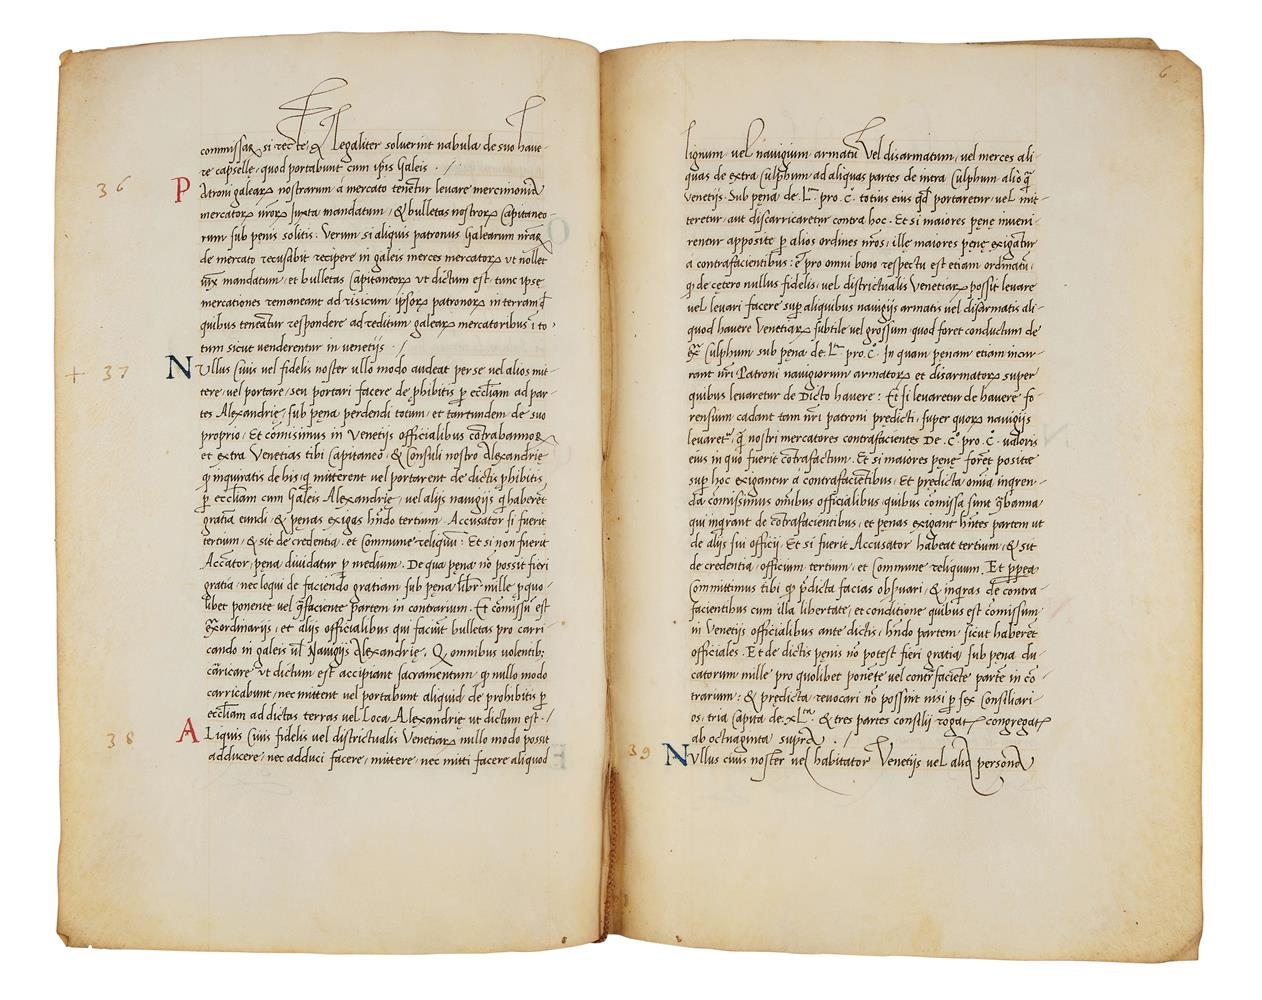 Leaves with the regulations of a mercantile fleet that set sail from Venice on 21 May 1504 for Al